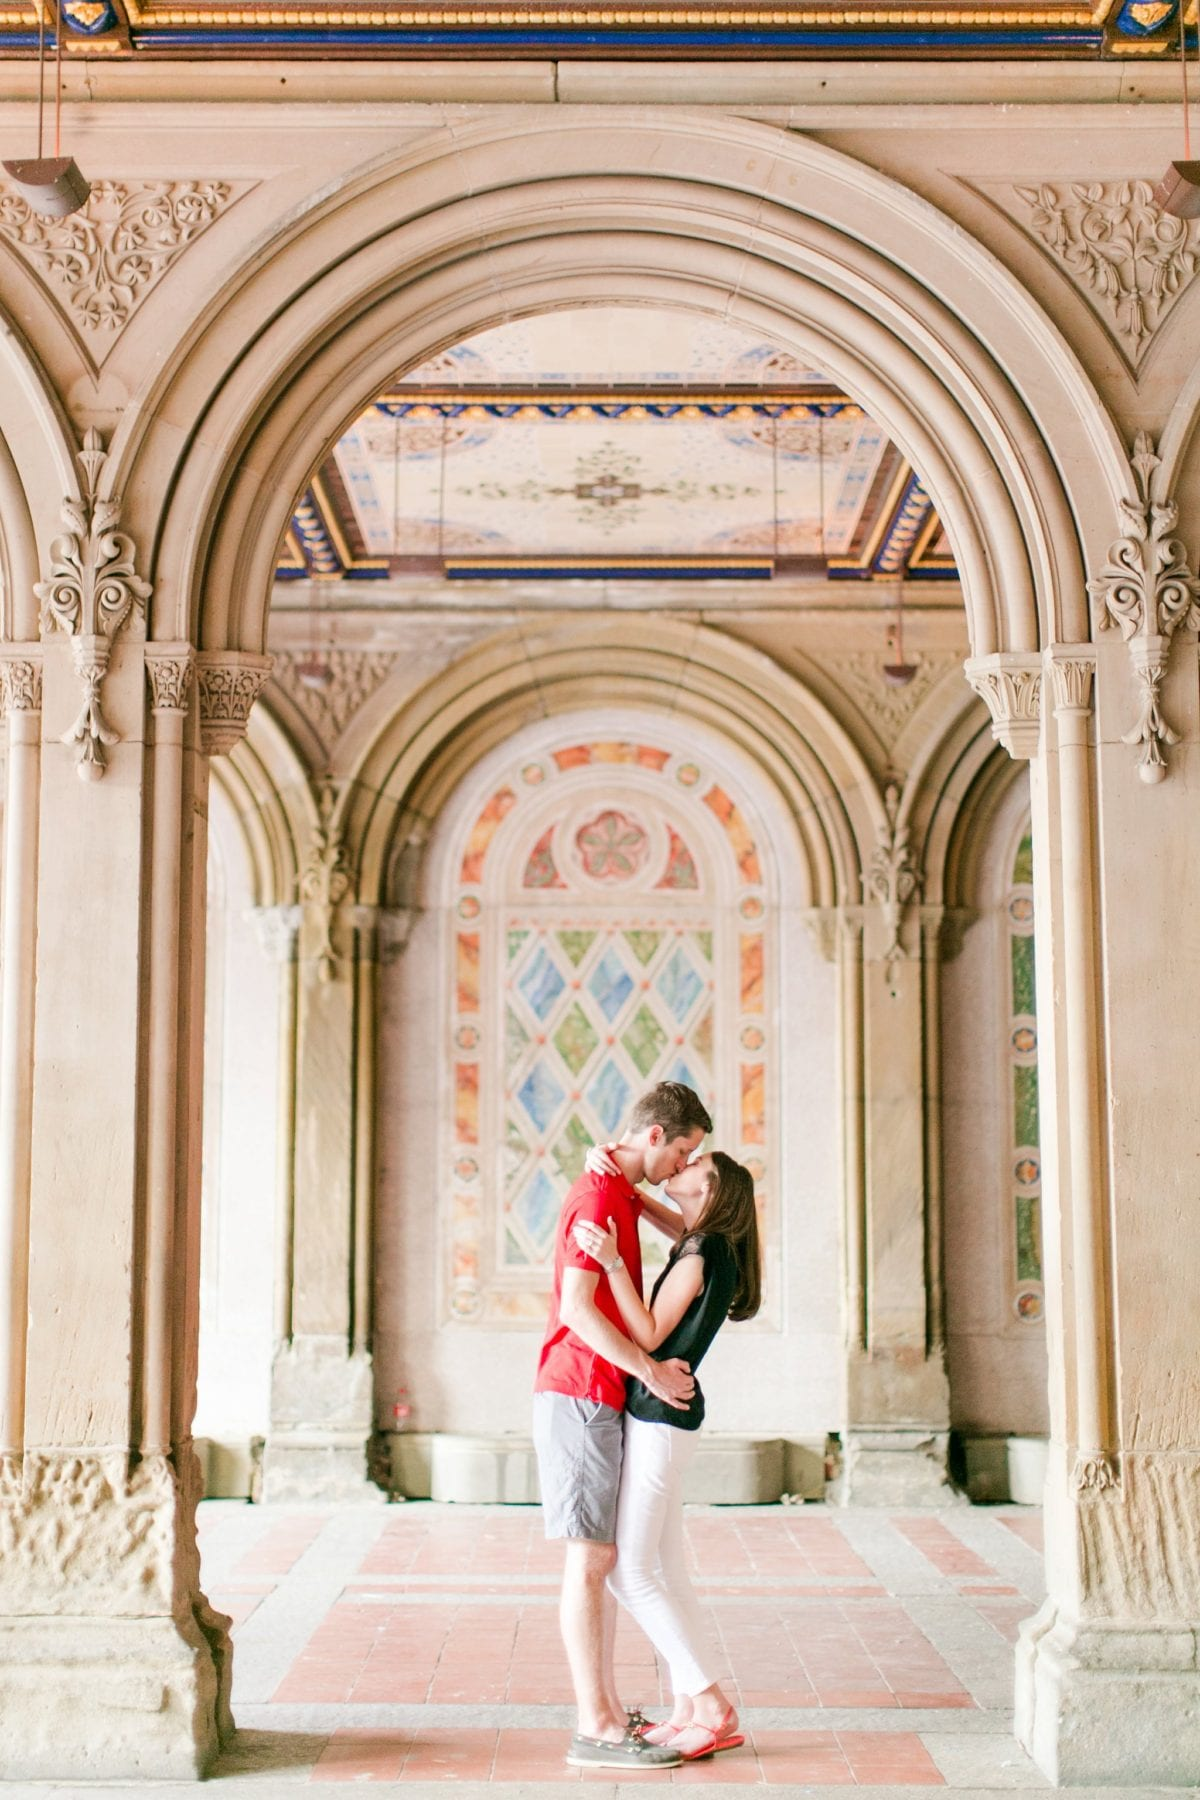 West Village Central Park Engagement Photos NYC Wedding Photographer Megan Kelsey Photography-252.jpg